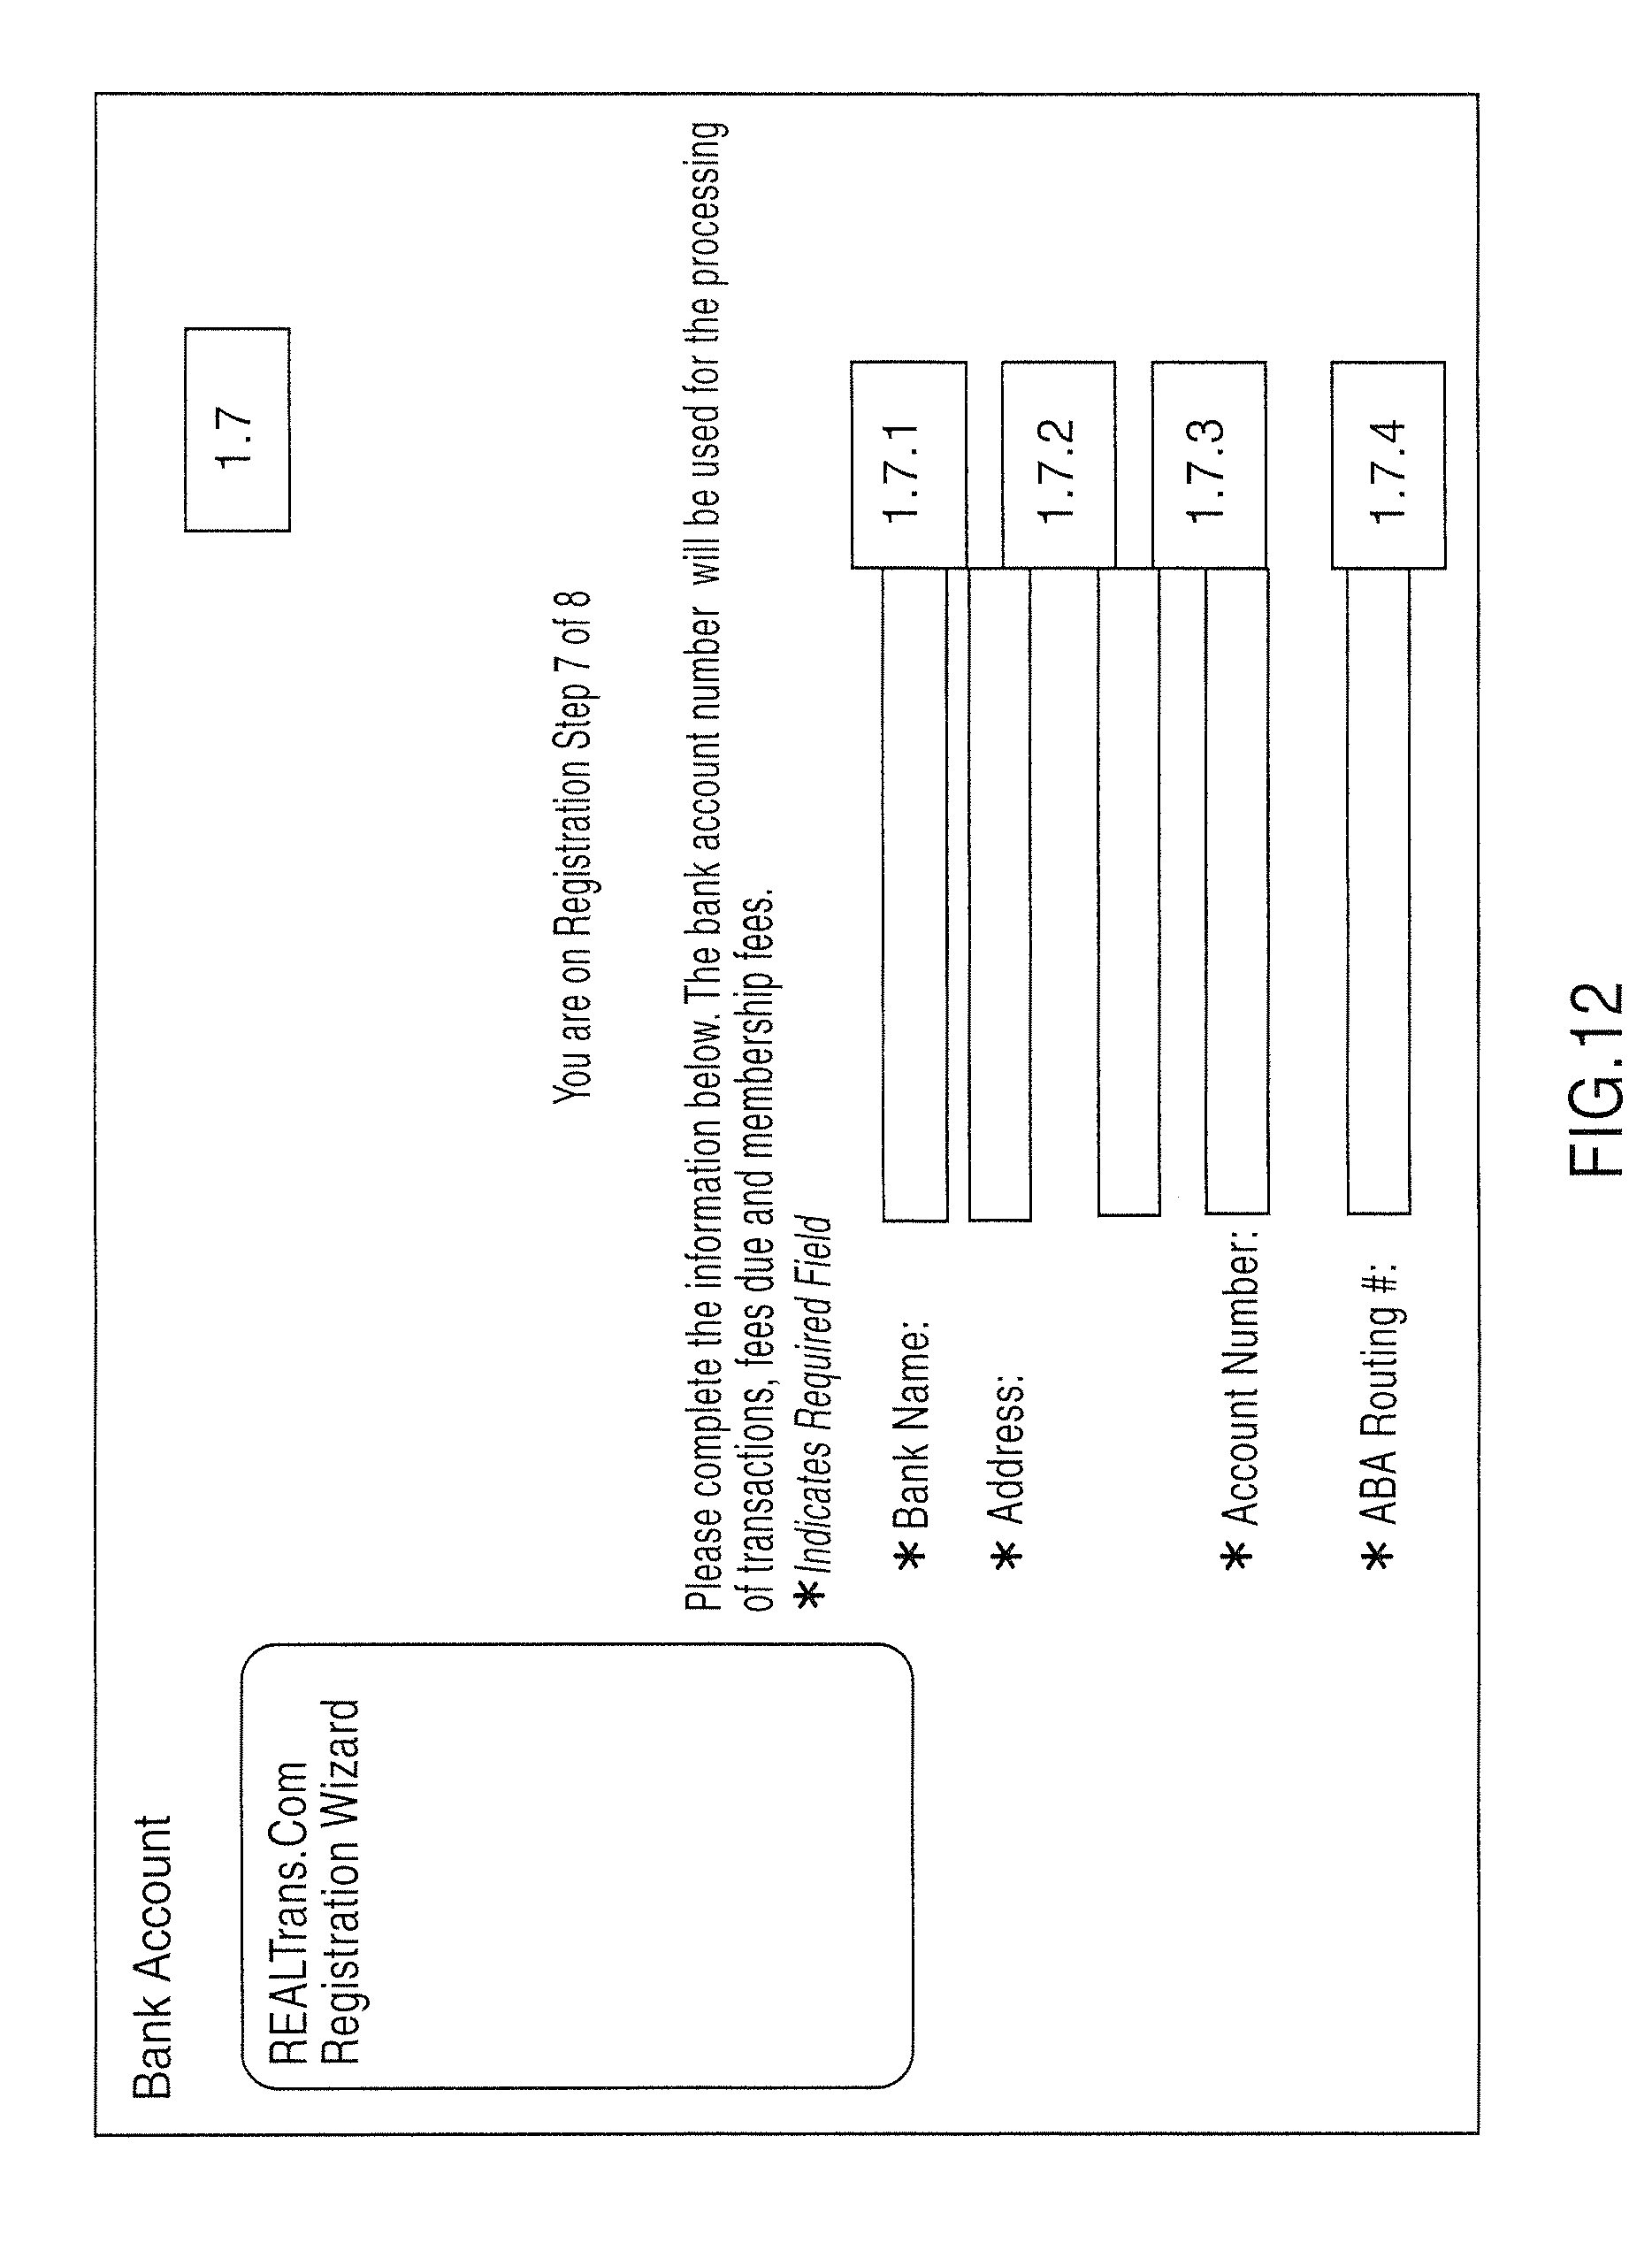 Warehouse Receipt Sample Excel Patent Us  Expense Tracking Electronic Ordering Invoice  Receipt Form For Payment Pdf with Invoice Generation Software Word Patent Drawing Delta Baggage Receipt Excel